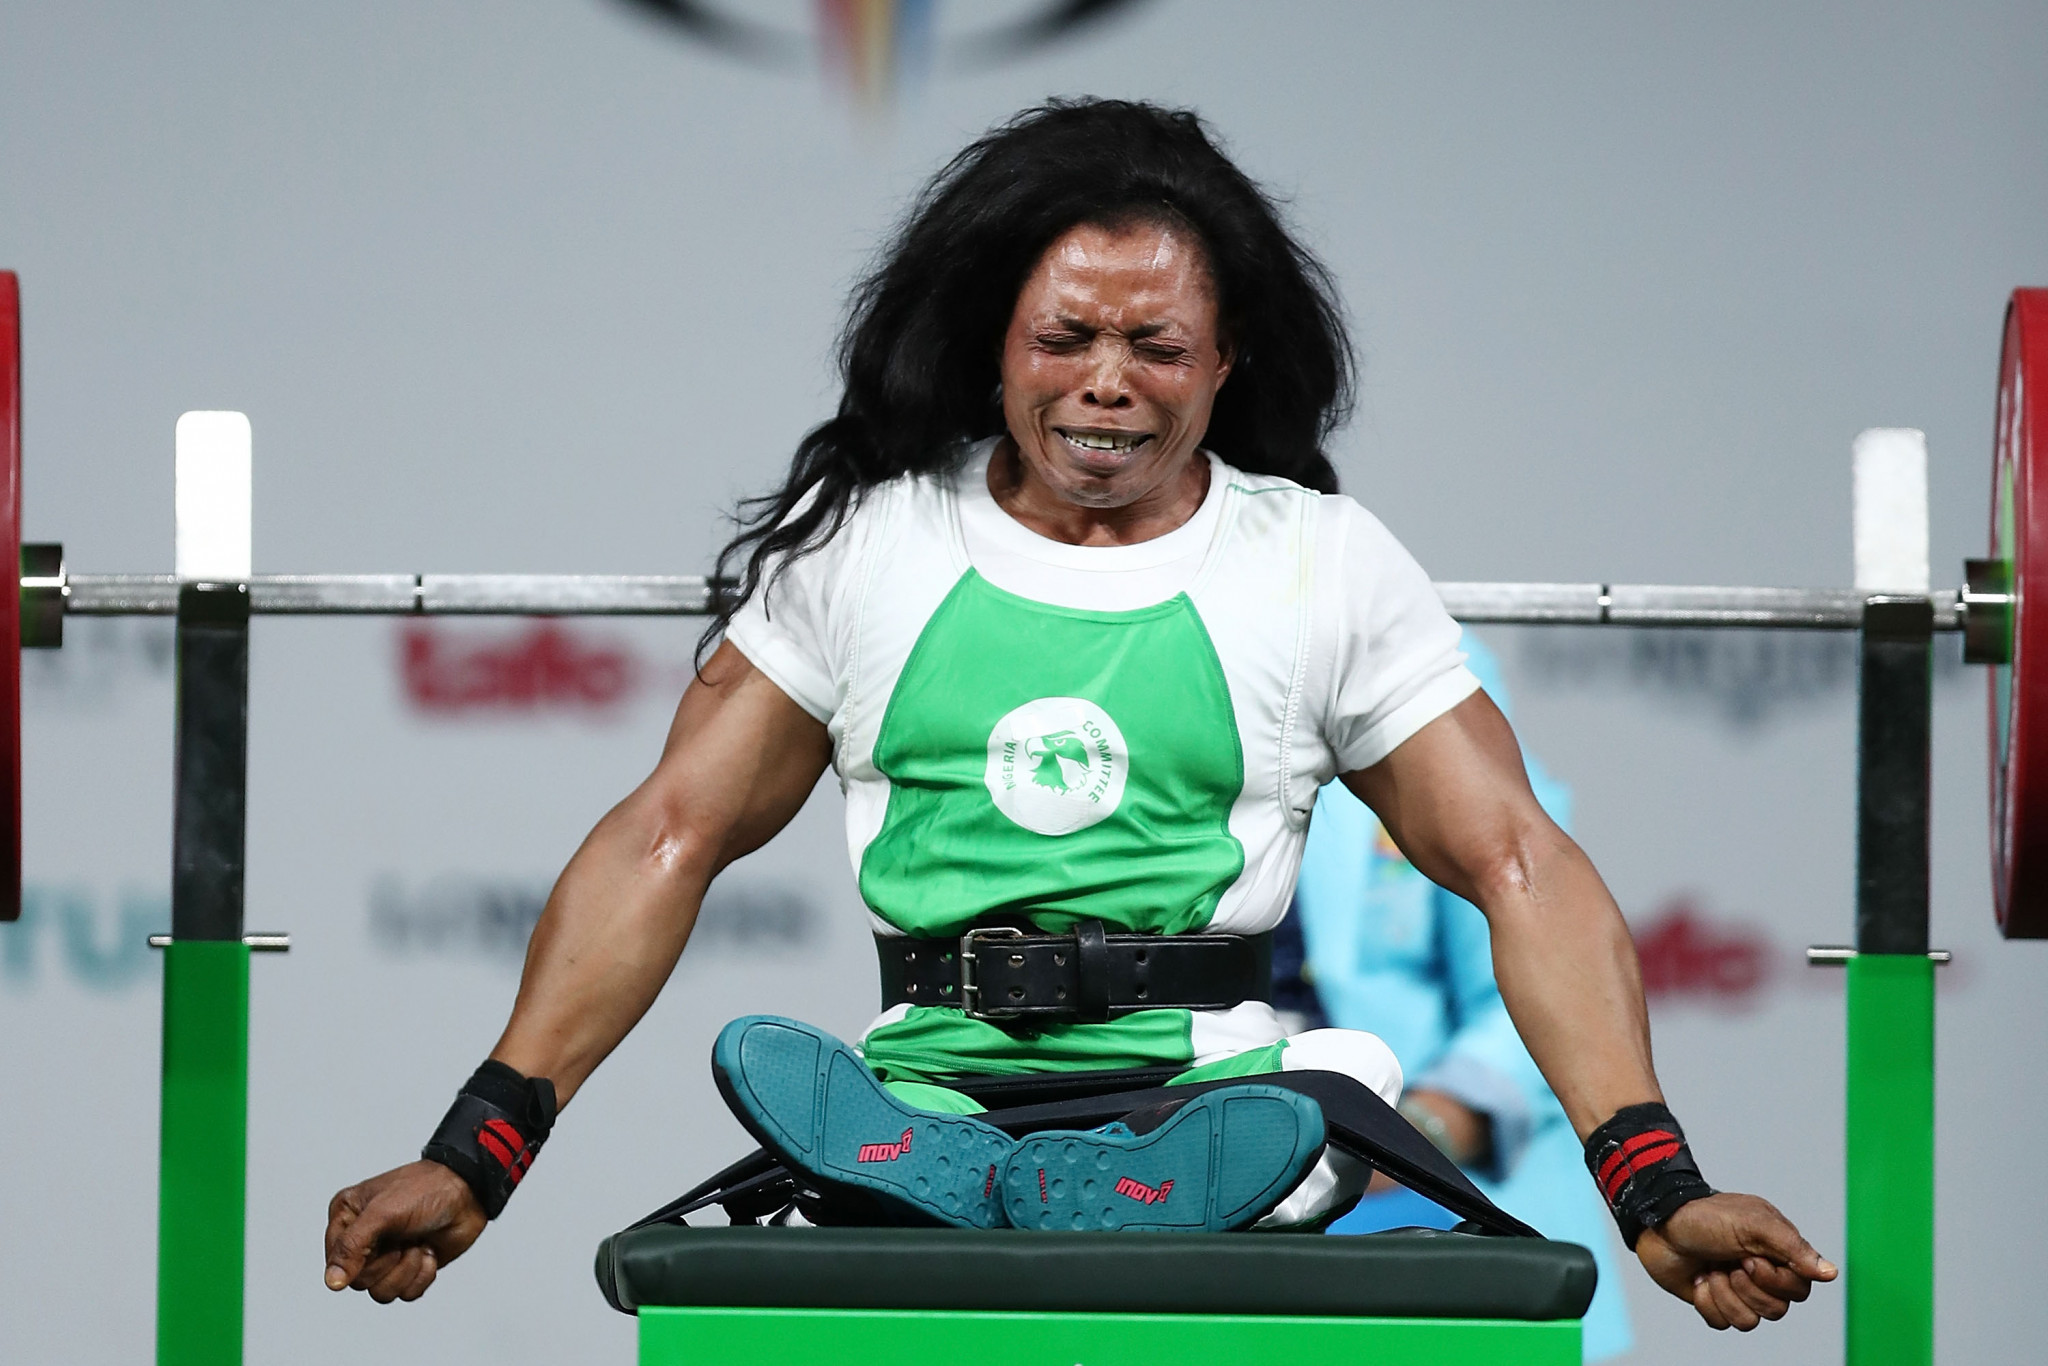 Oyema won gold medals at three consecutive Commonwealth Games, including at Gold Coast 2018 thanks to a world record lift ©Getty Images